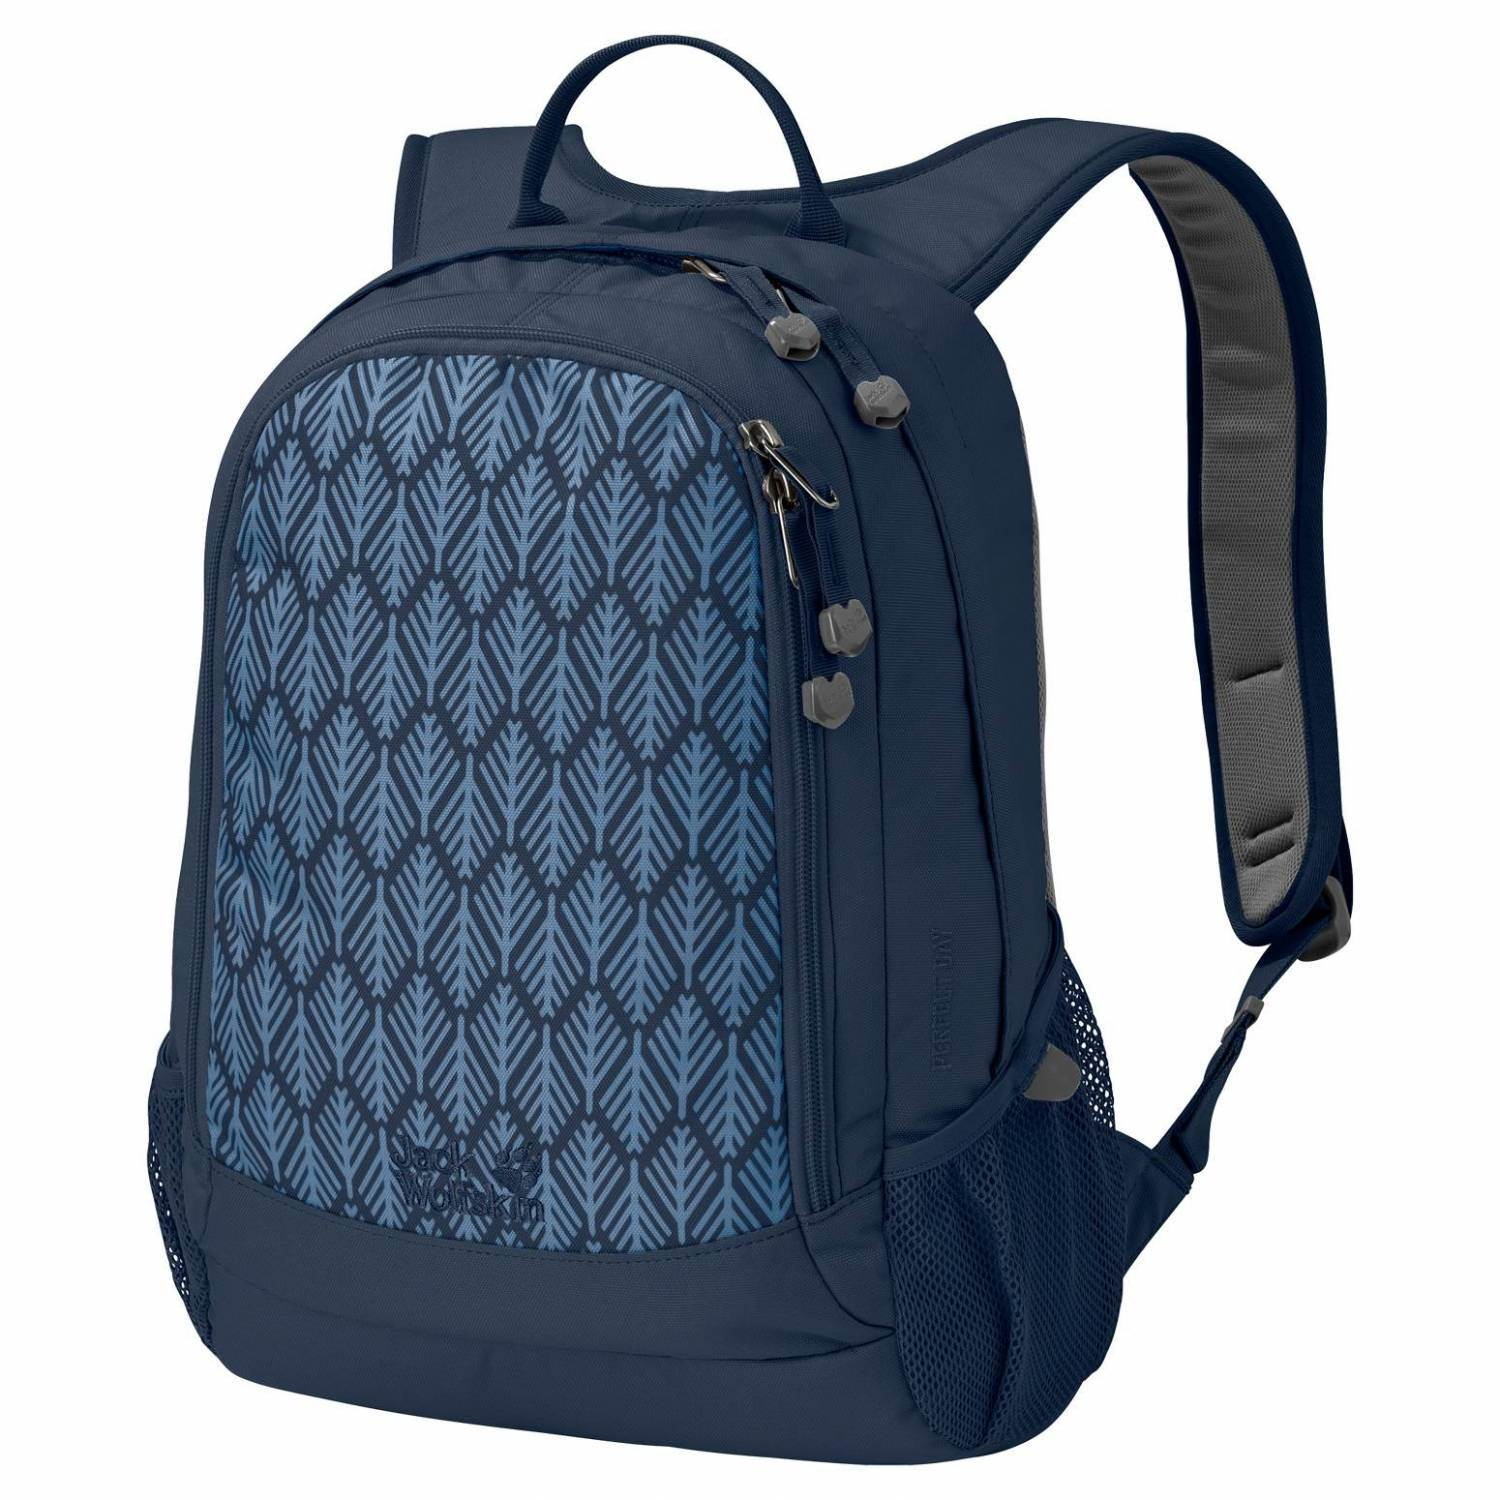 Jack Wolfskin Perfect Day Rucksack (Farbe: 7937 midnight blue geometric leaves)